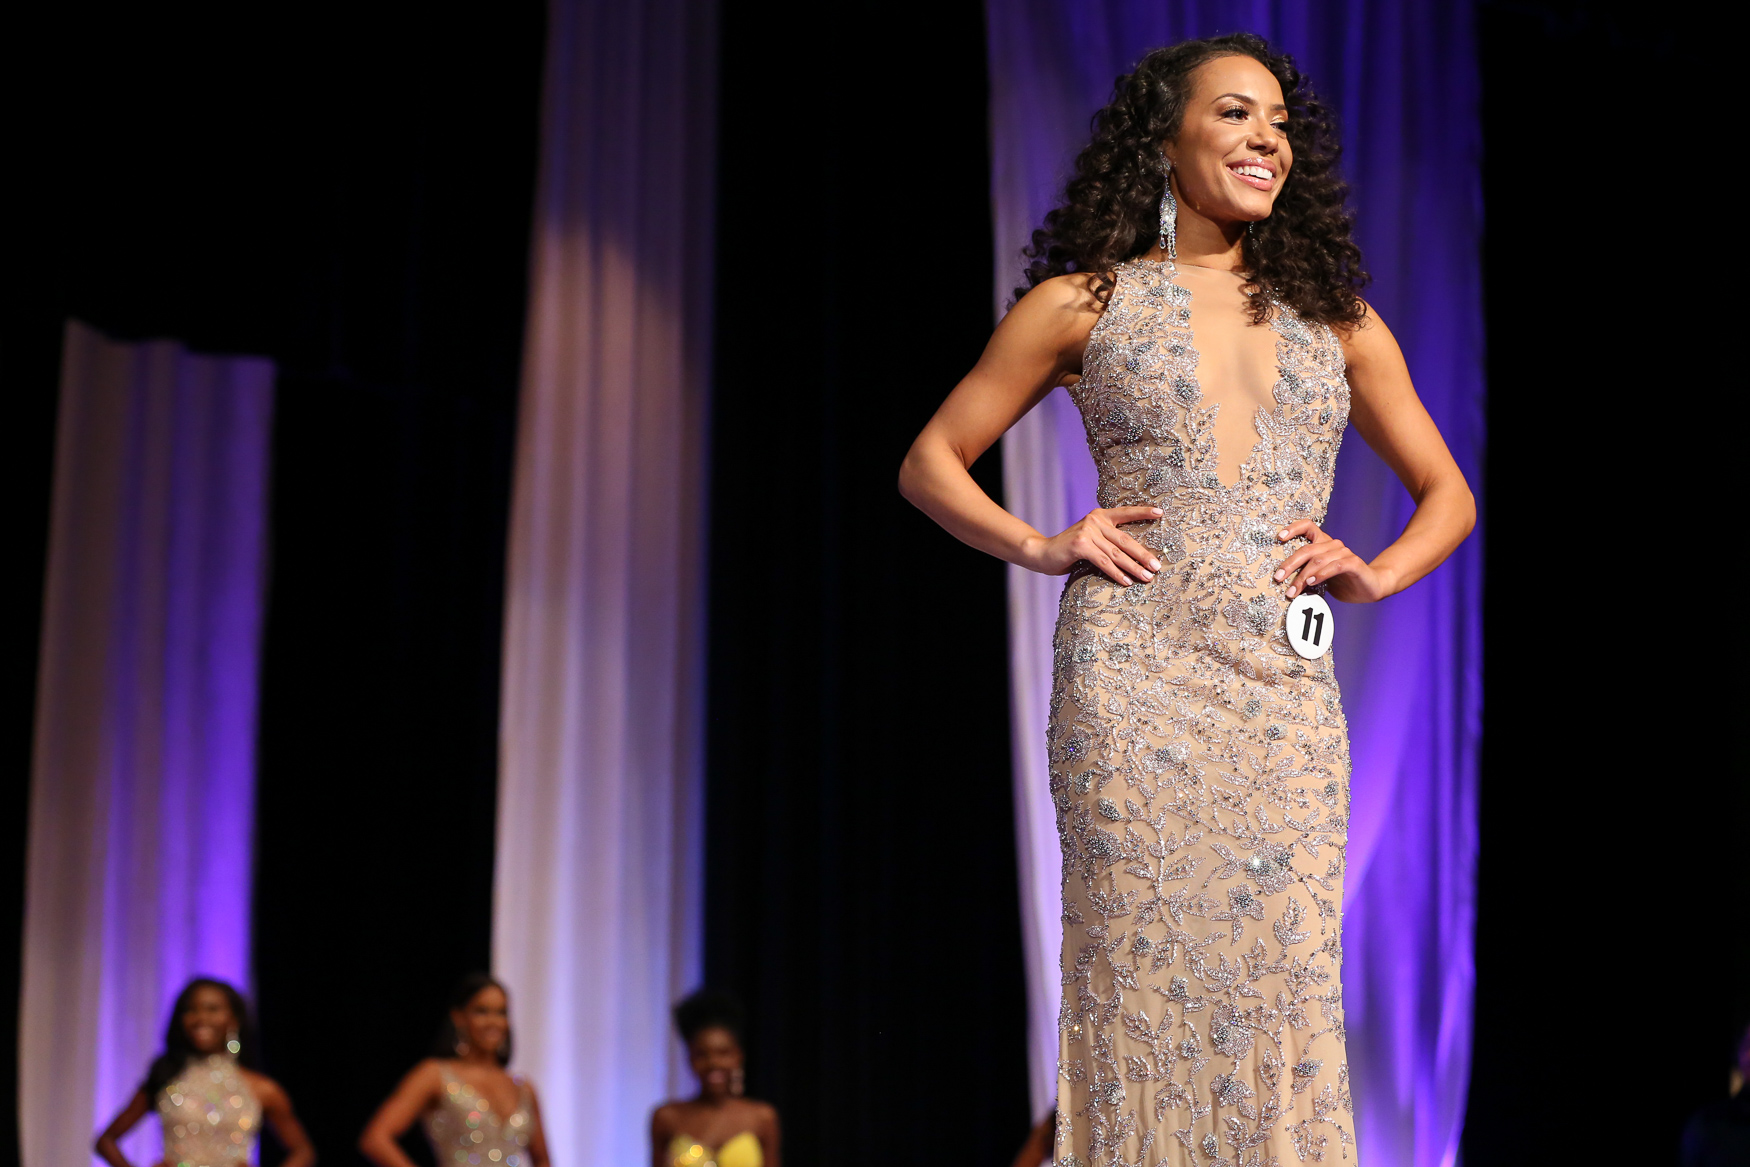 After an intense weekend of competition on the theater stage at the University of District of Columbia, Cordelia Crenshaw was officially been crowned the new Miss District of Columbia USA on December 8. Crenshaw competed in a swimsuit, a ball gown and showed off her quick wits during a brief question-and-answer period, but her openness about her personal struggles set her apart. Crenshaw's mother was incarcerated and her father struggled with alcoholism, but she persevered{&amp;nbsp;}and made it to college and now advocated for youth. Her younger counterpart is Jaclyn Davis, who was crowned Miss Teen District of Columbia USA. The two of them will go on to compete at a national level. (Amanda Andrade-Rhoades/DC Refined){&amp;nbsp;}<br>